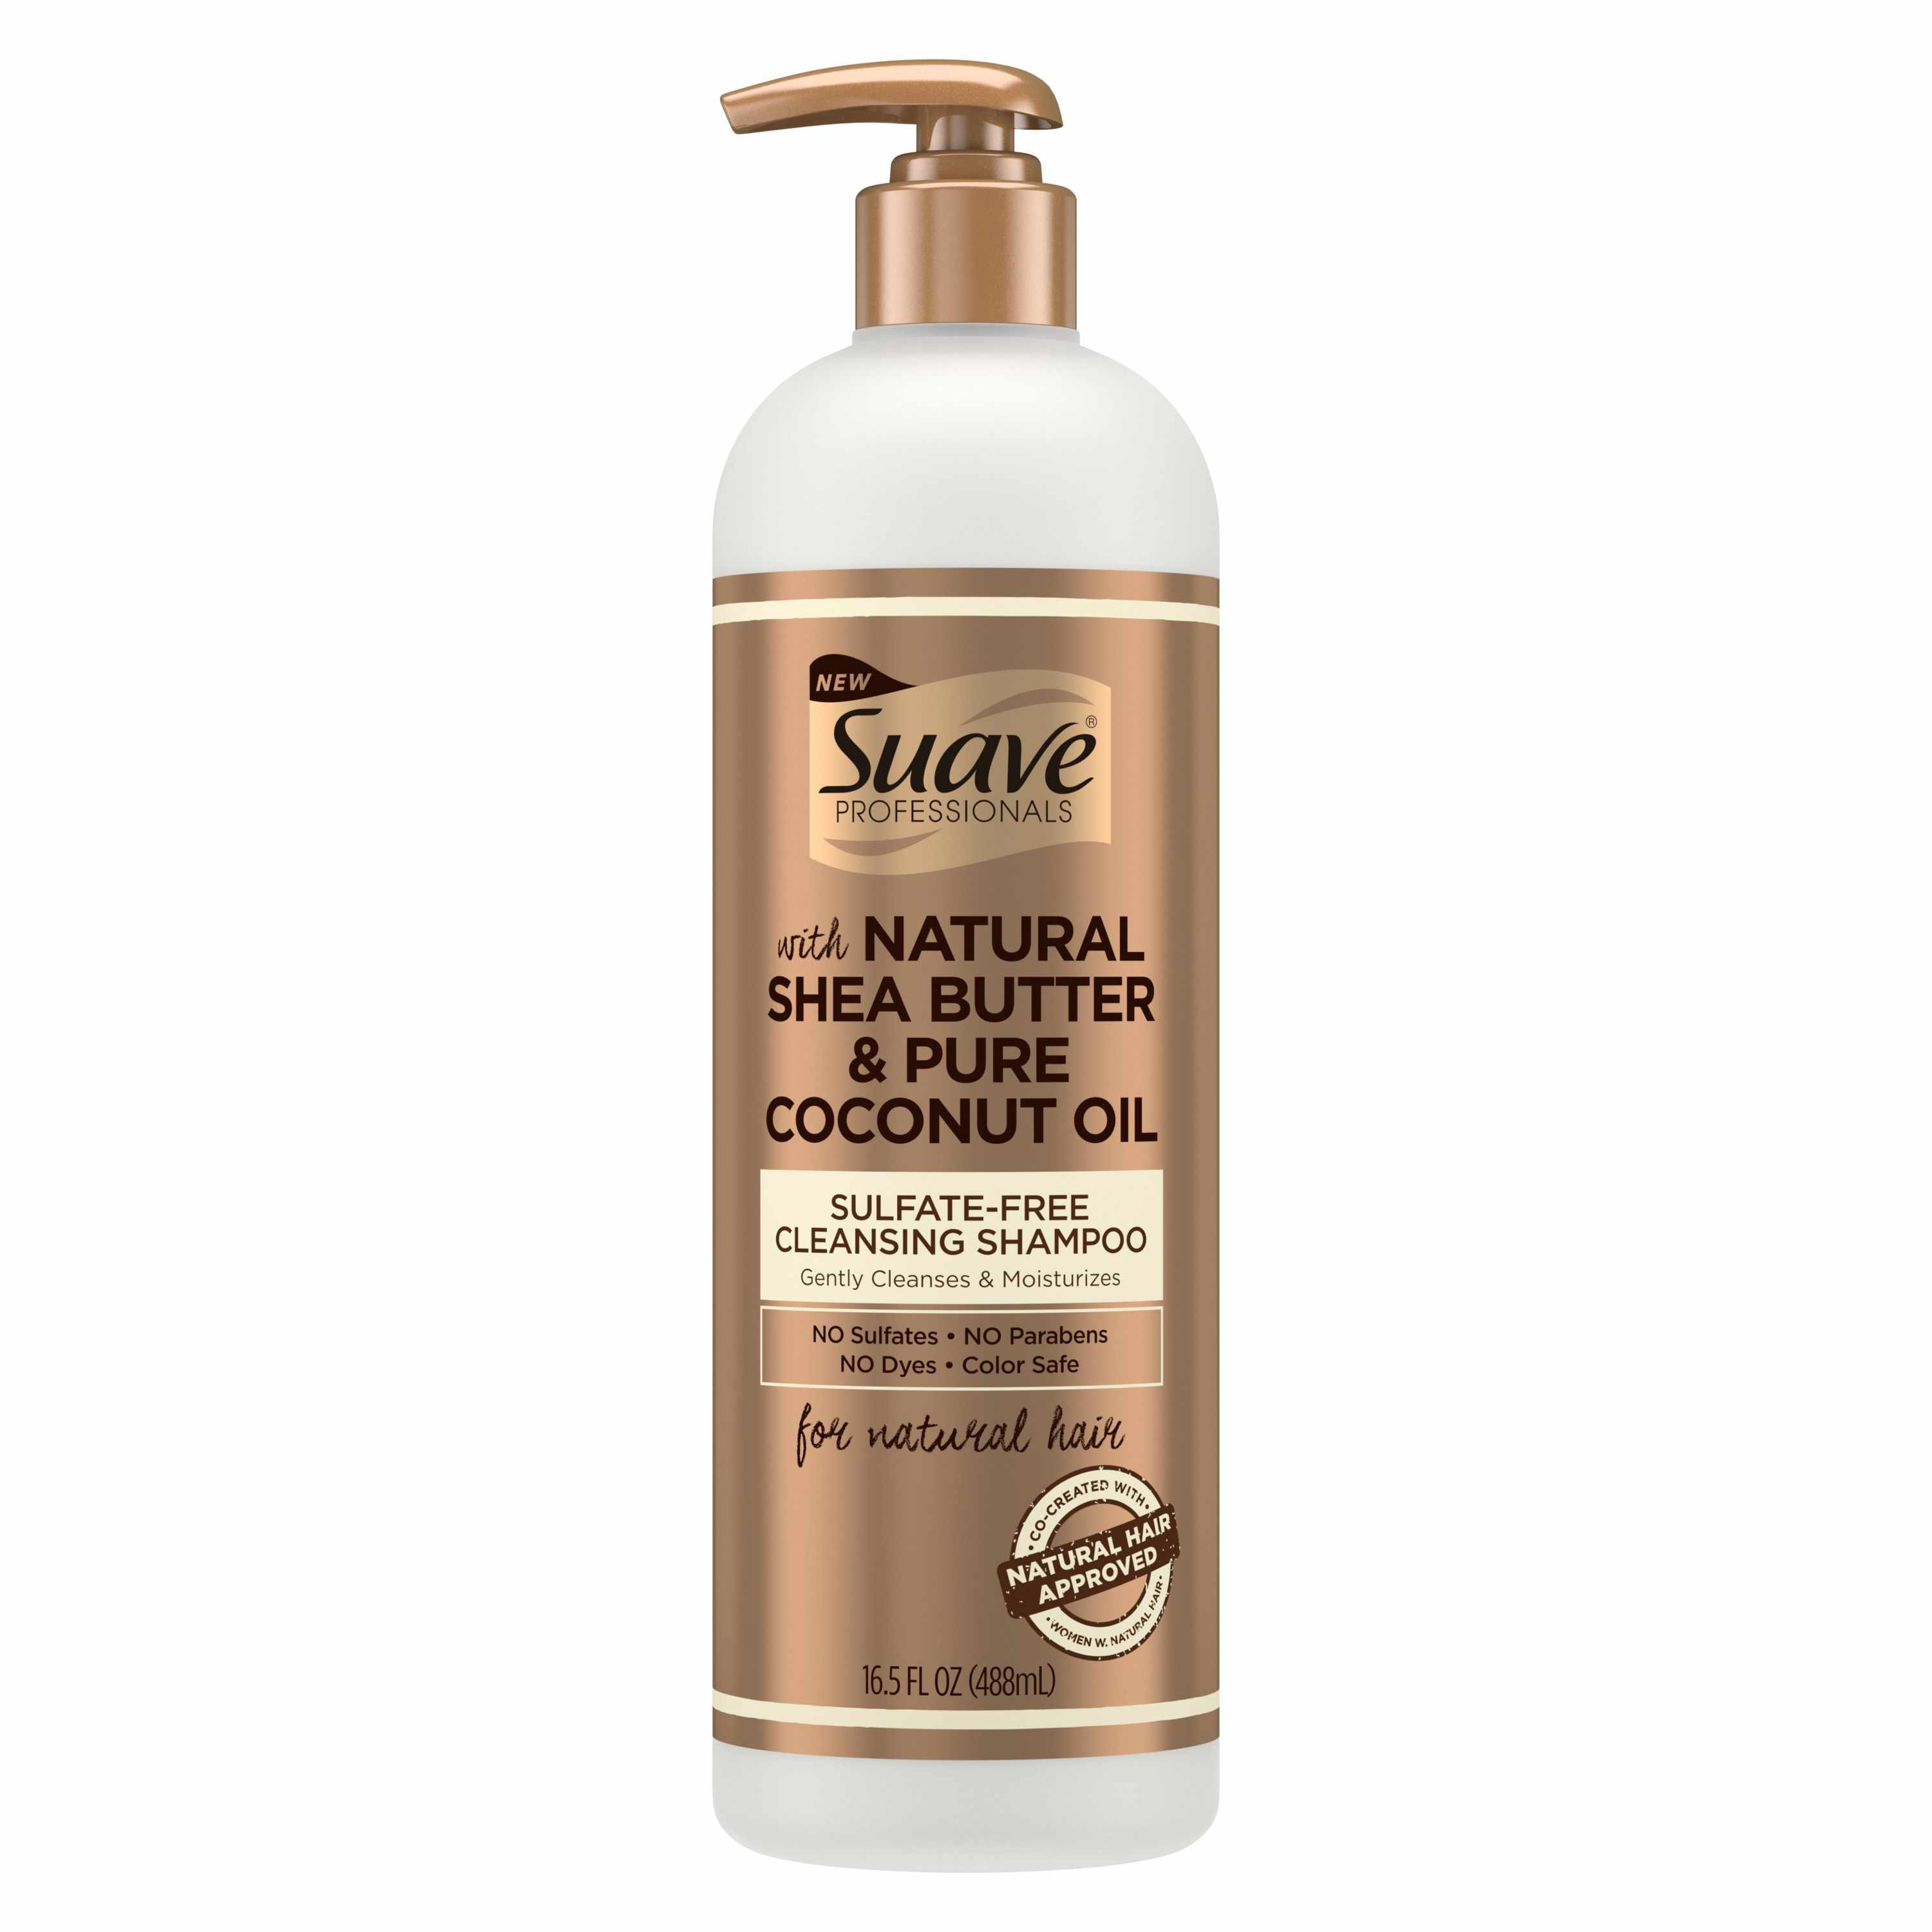 Suave Professionals Sulfate-Free Cleansing Shampoo